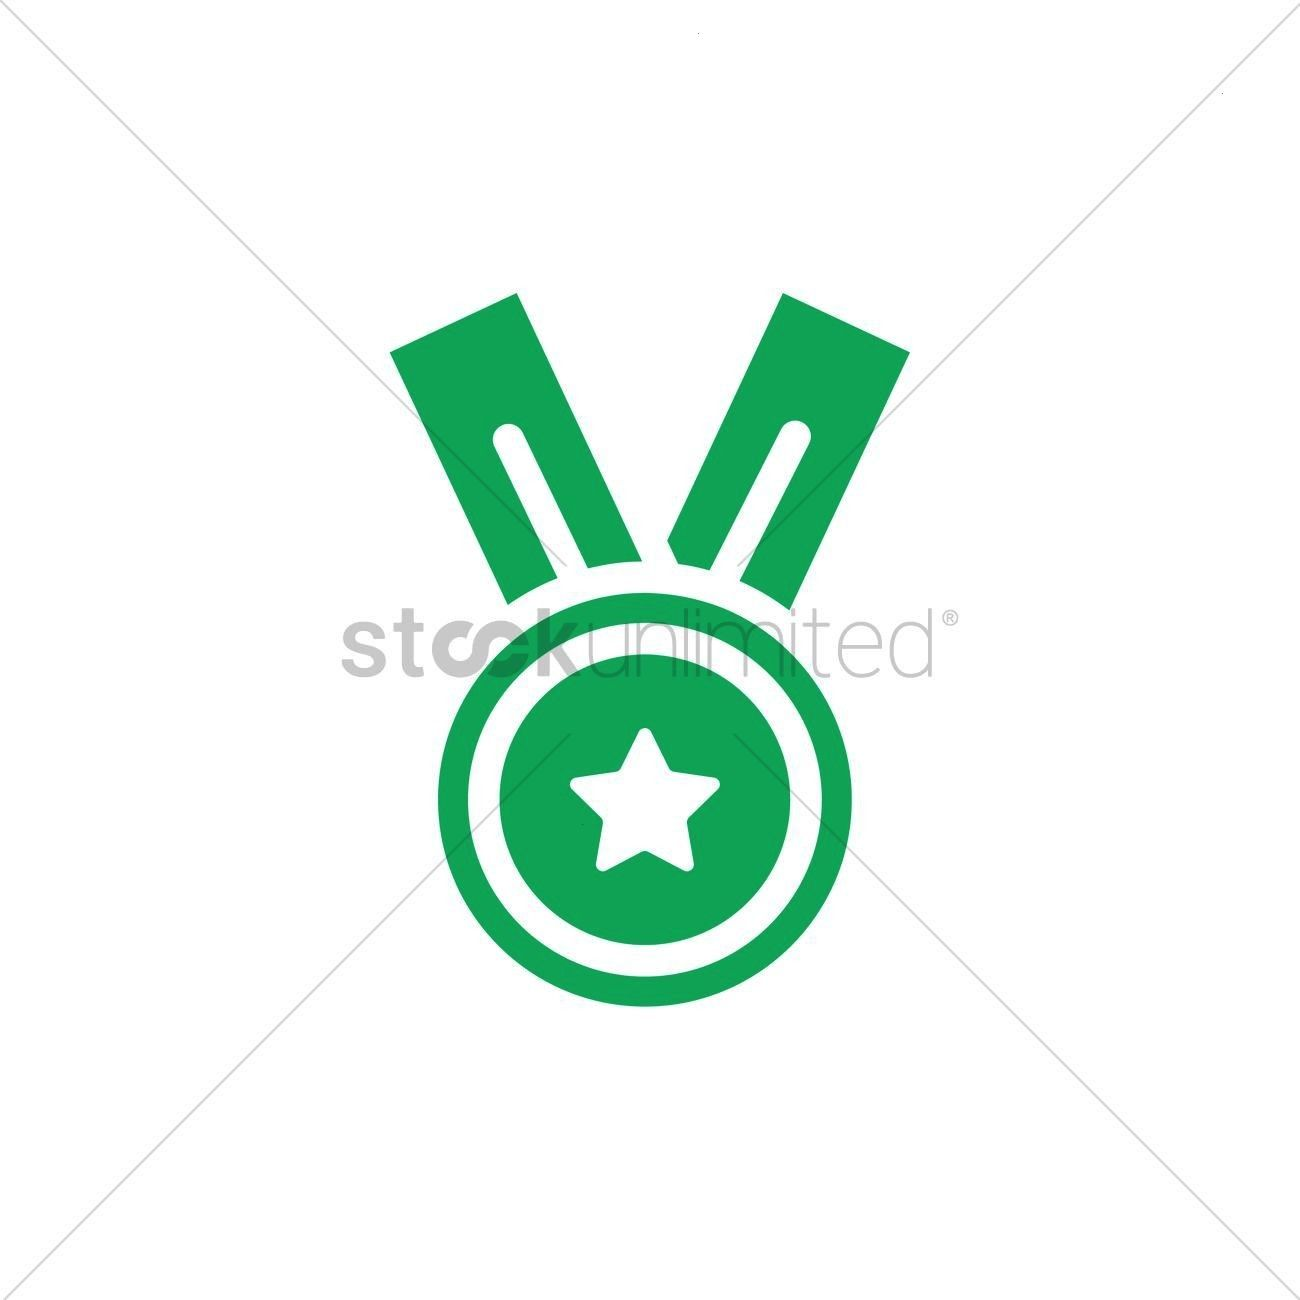 vectors stock clipart Medal vectors stock clipart  Jeonrip vectors stock clipart  Chinese incense pot stock vector  Star ball vector illustration  Scorpio vectors stock c...